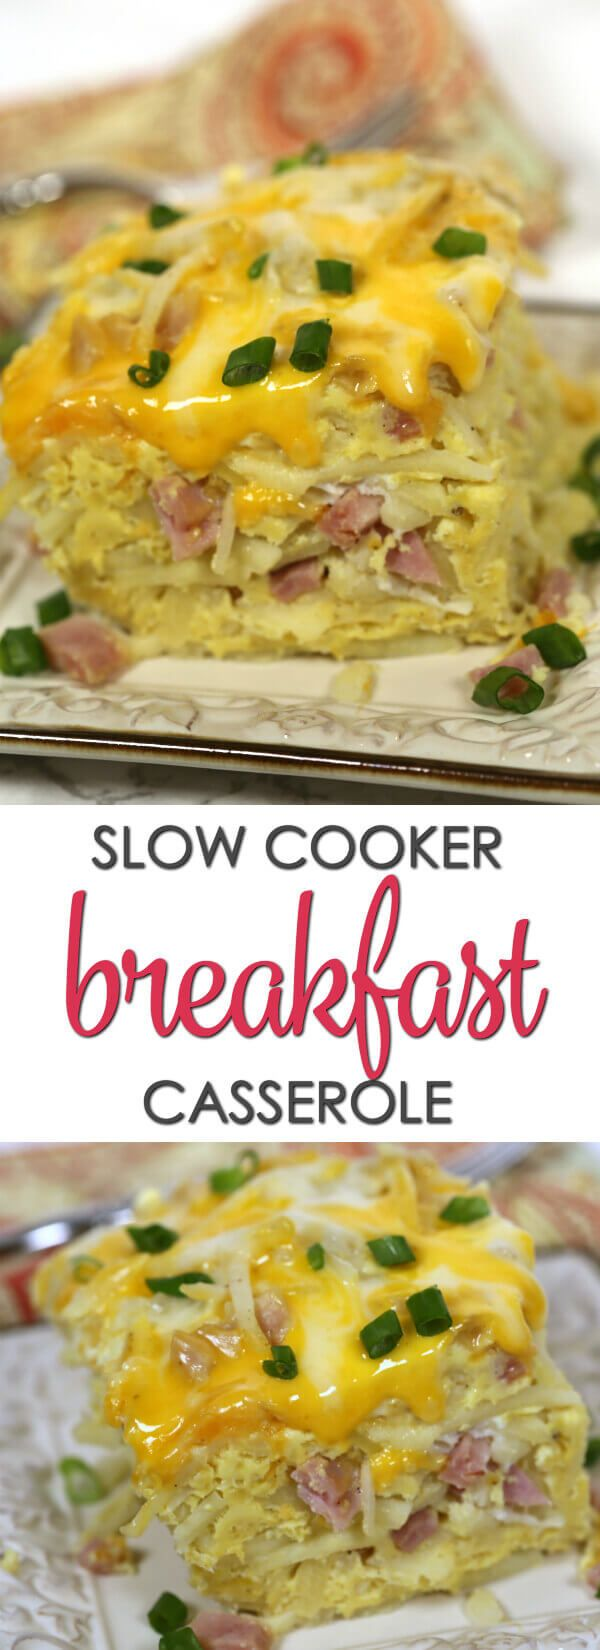 Slow Cooker Breakfast Casserole - this easy breakfast recipe cooks while you sleep. It's one of the best slow cooker recipes of all times.